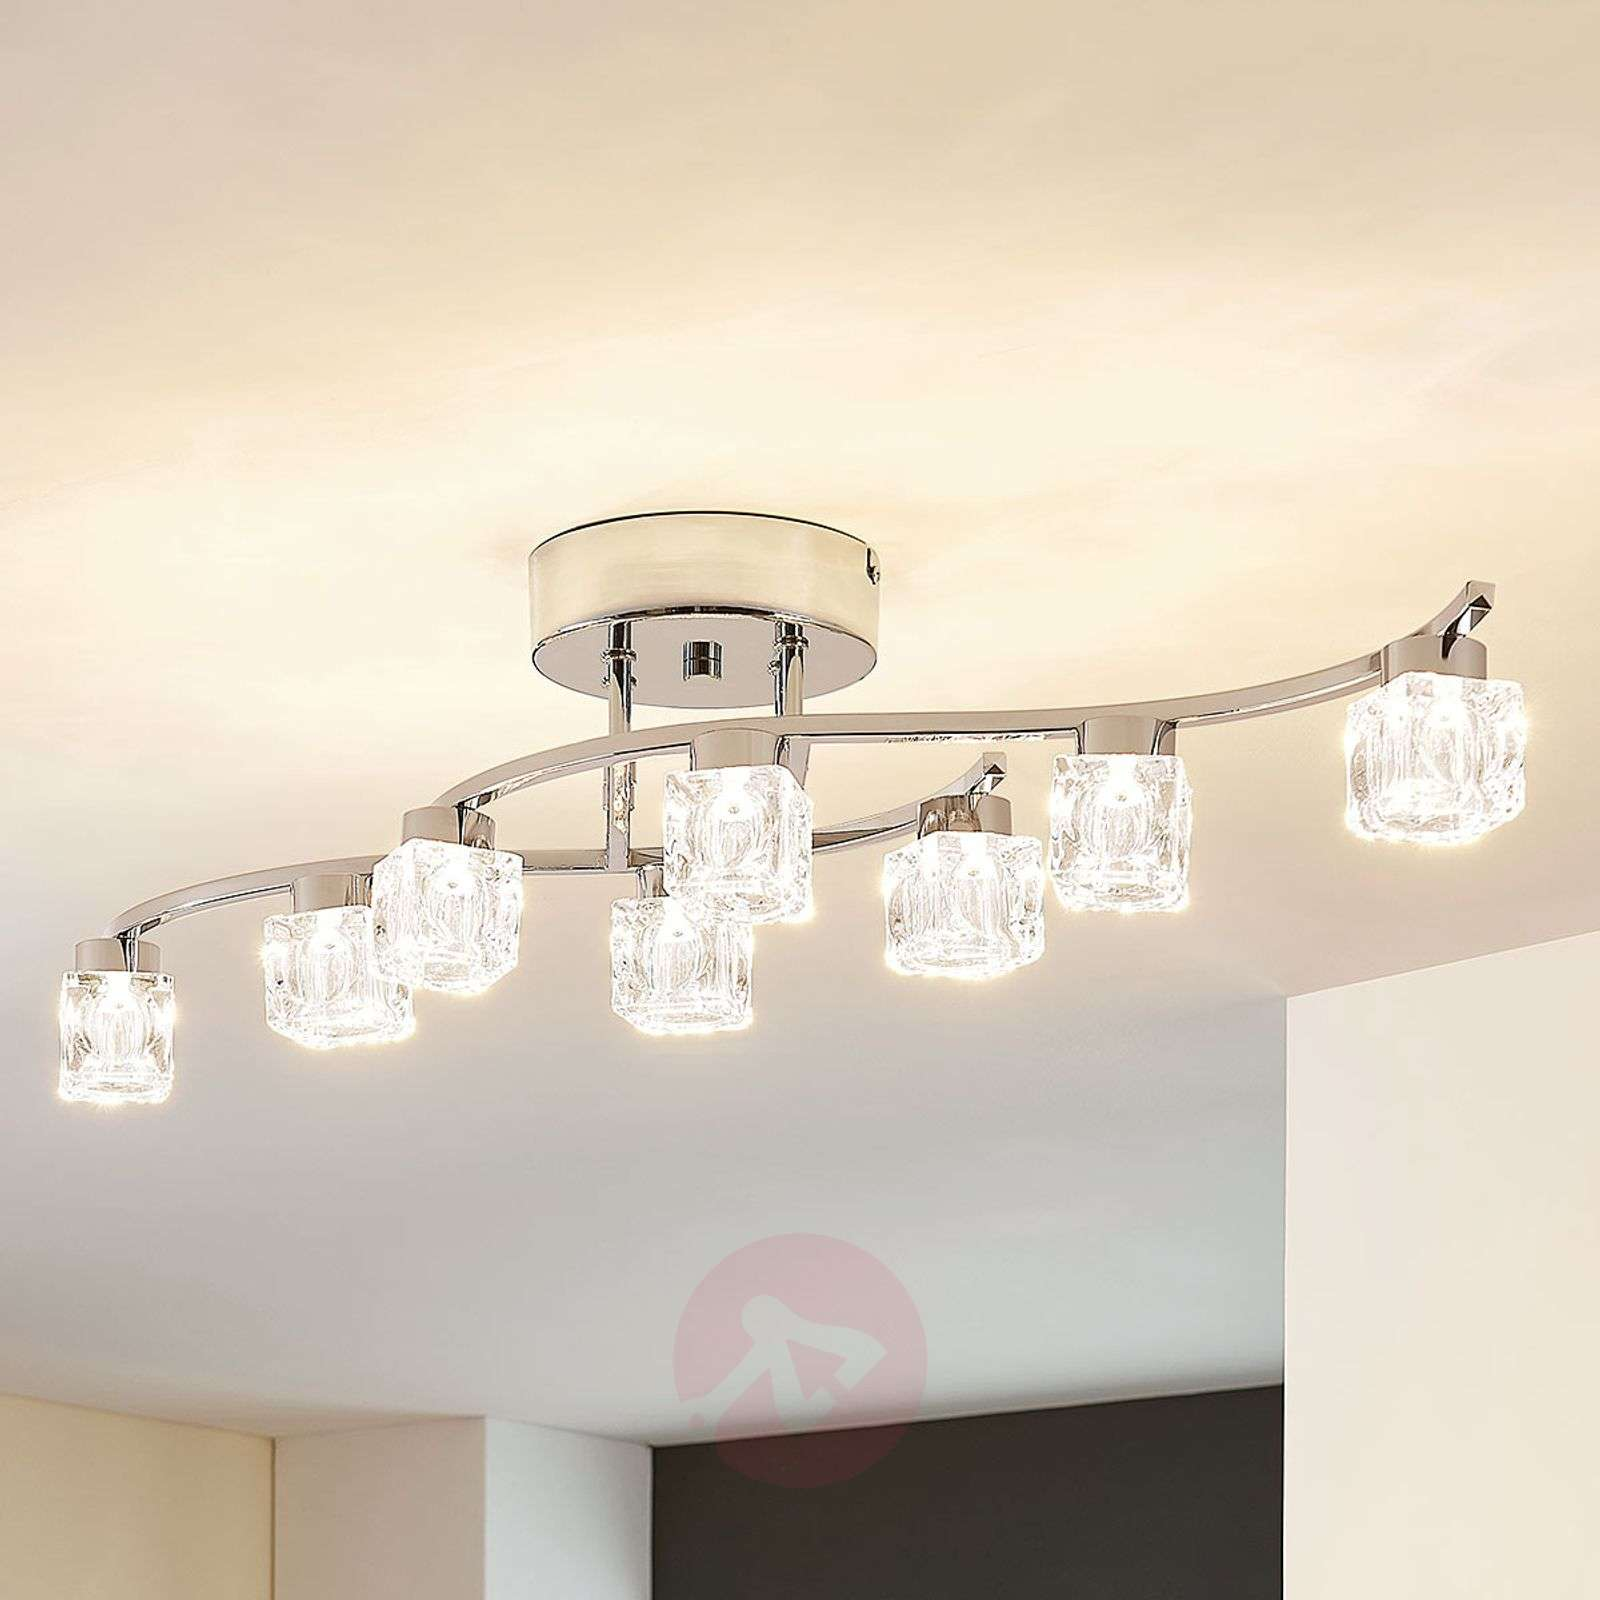 Plafonnier LED Yaro dimmable à huit lampes-9621973-01